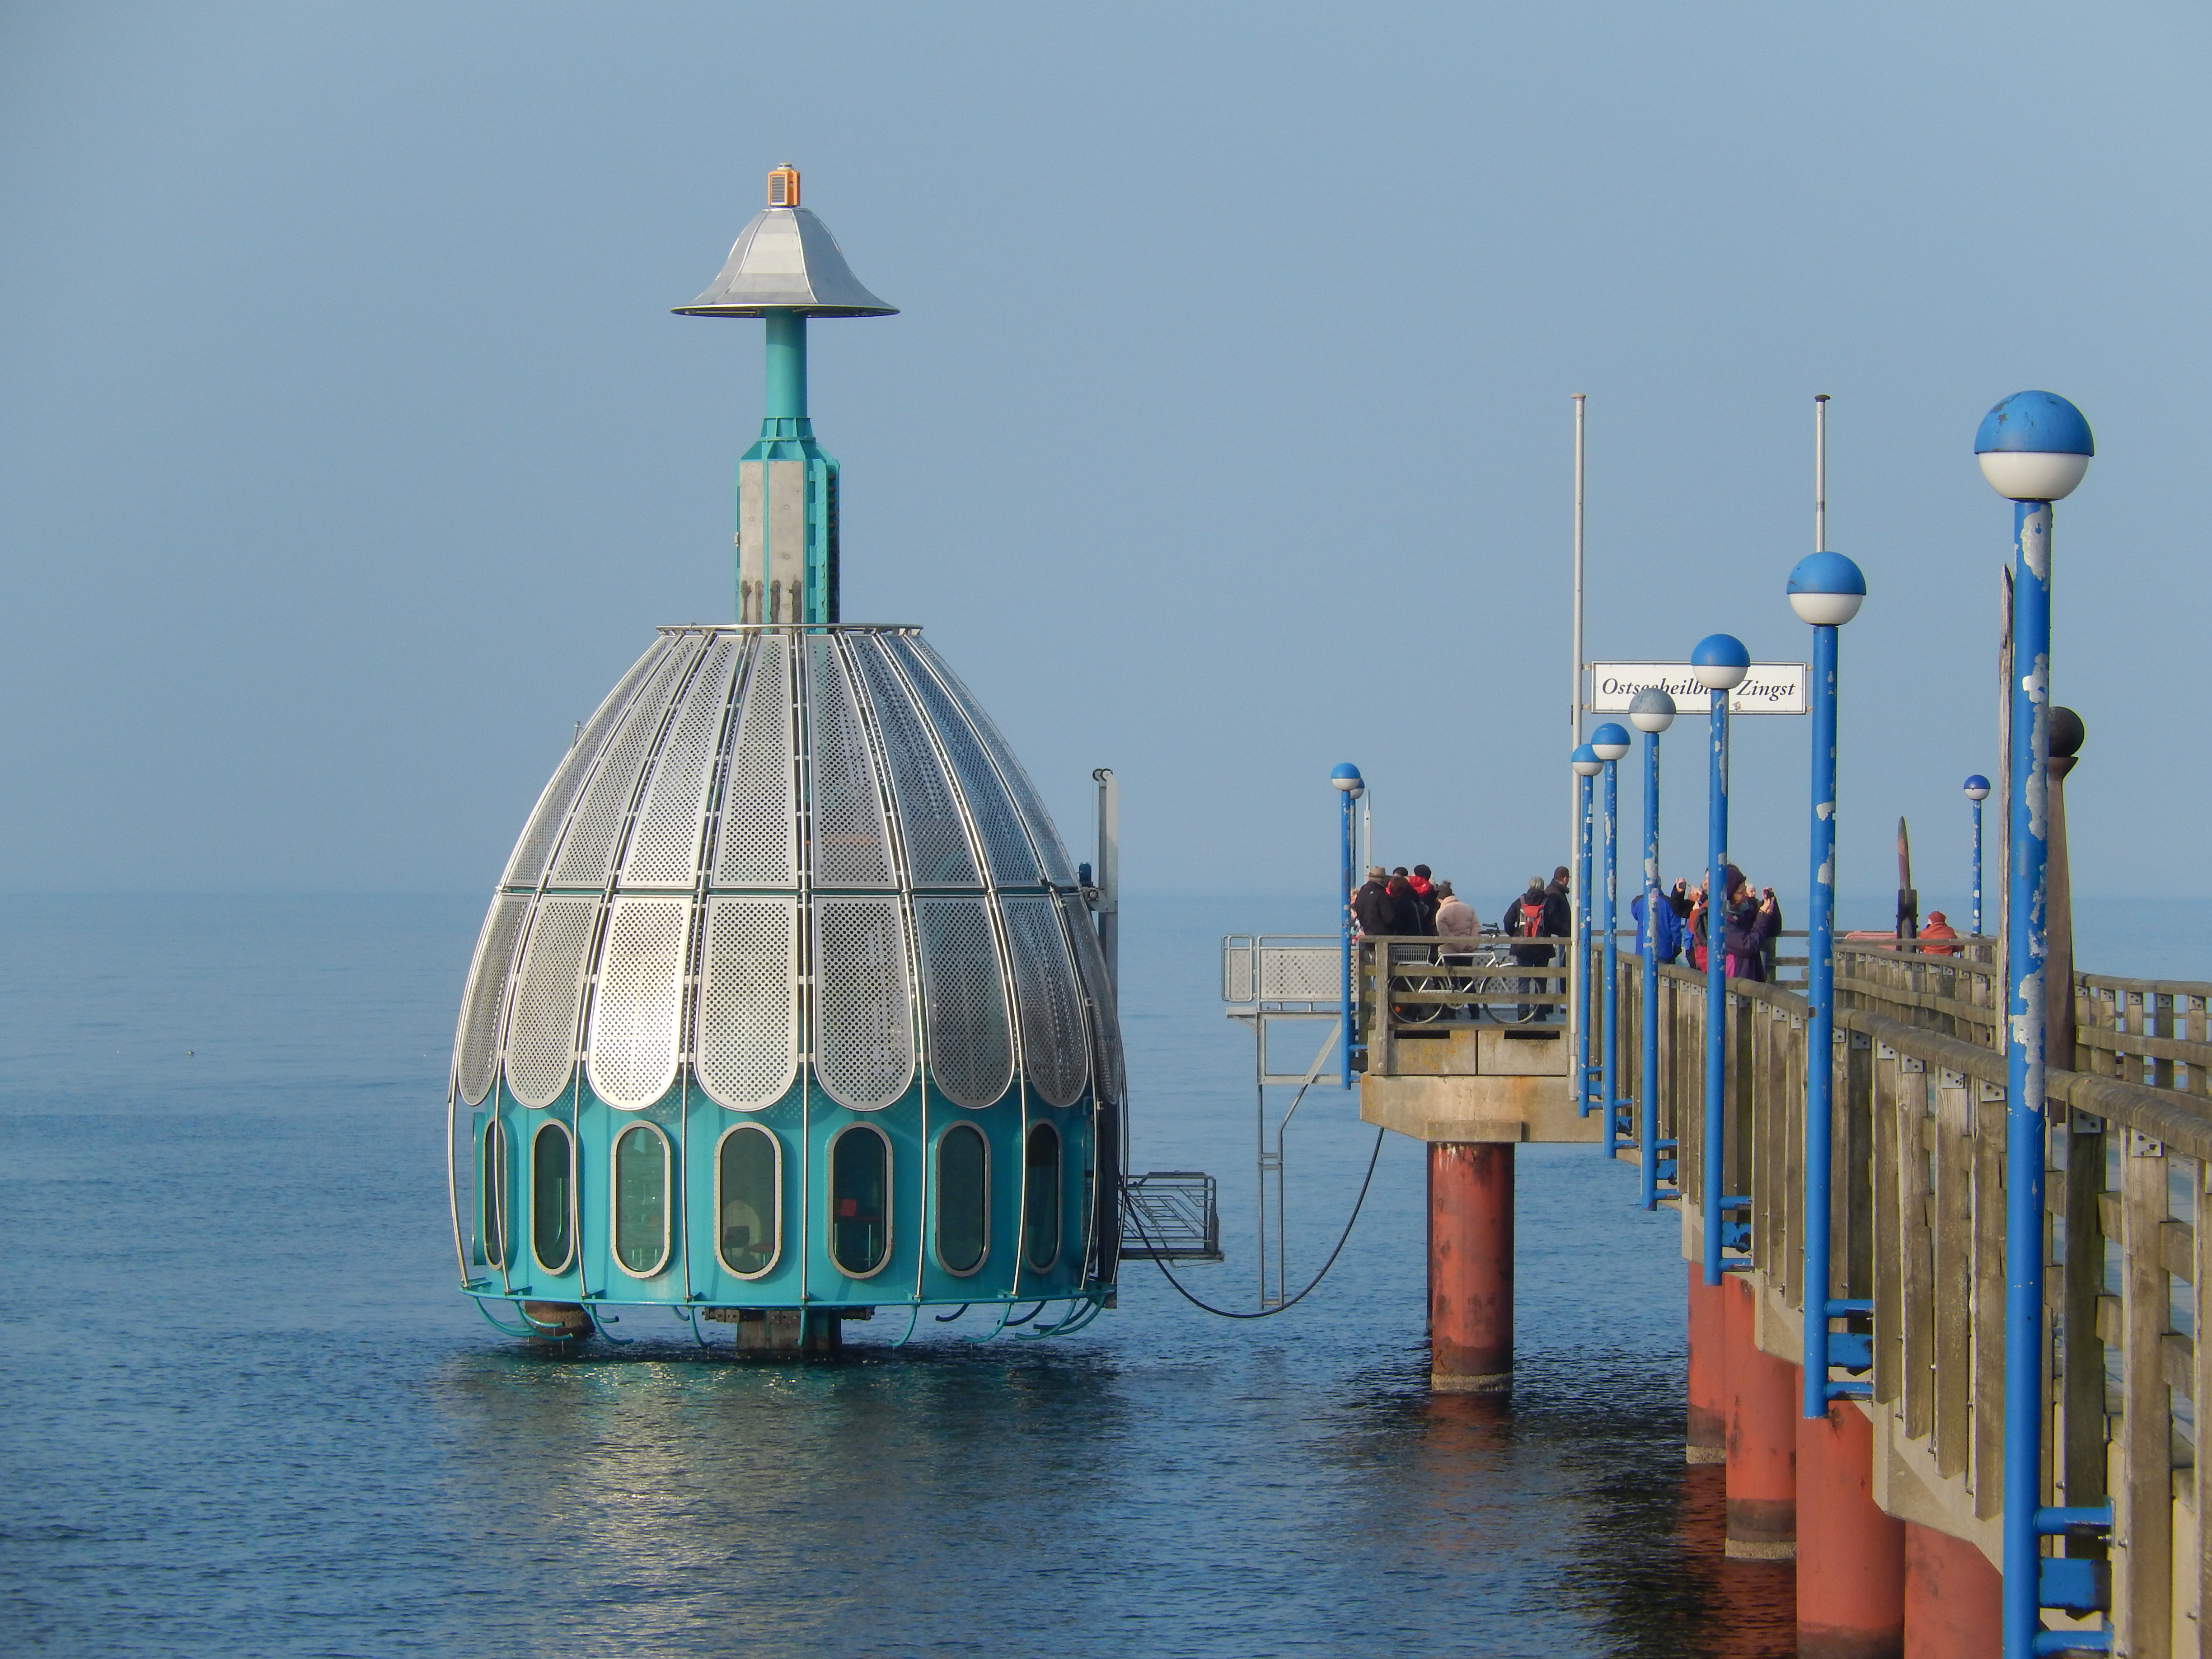 Zingst Germany  city images : Tauchgondel Zingst Wikimedia Commons